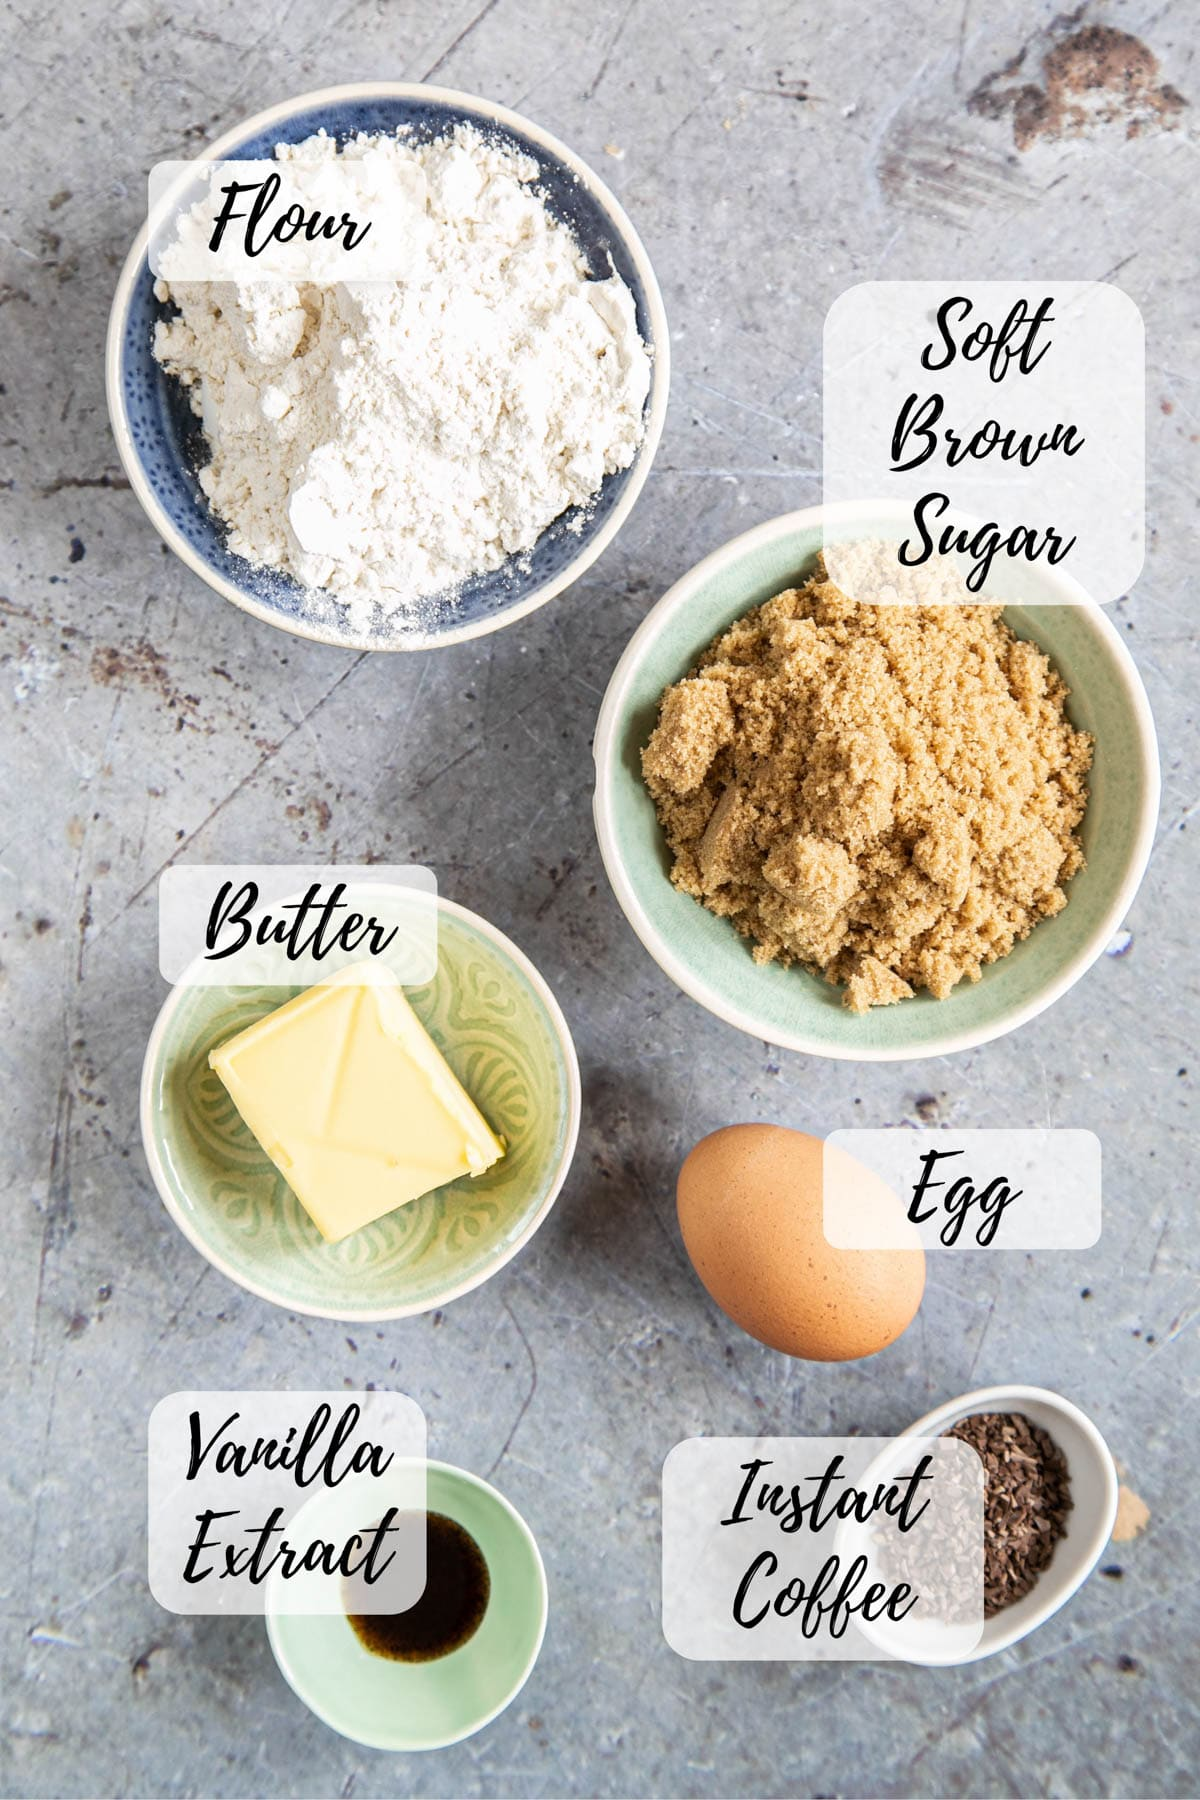 Ingredients for coffee blondies: flour, soft brown sugar, an egg, butter, vanilla extract, and instant coffee.